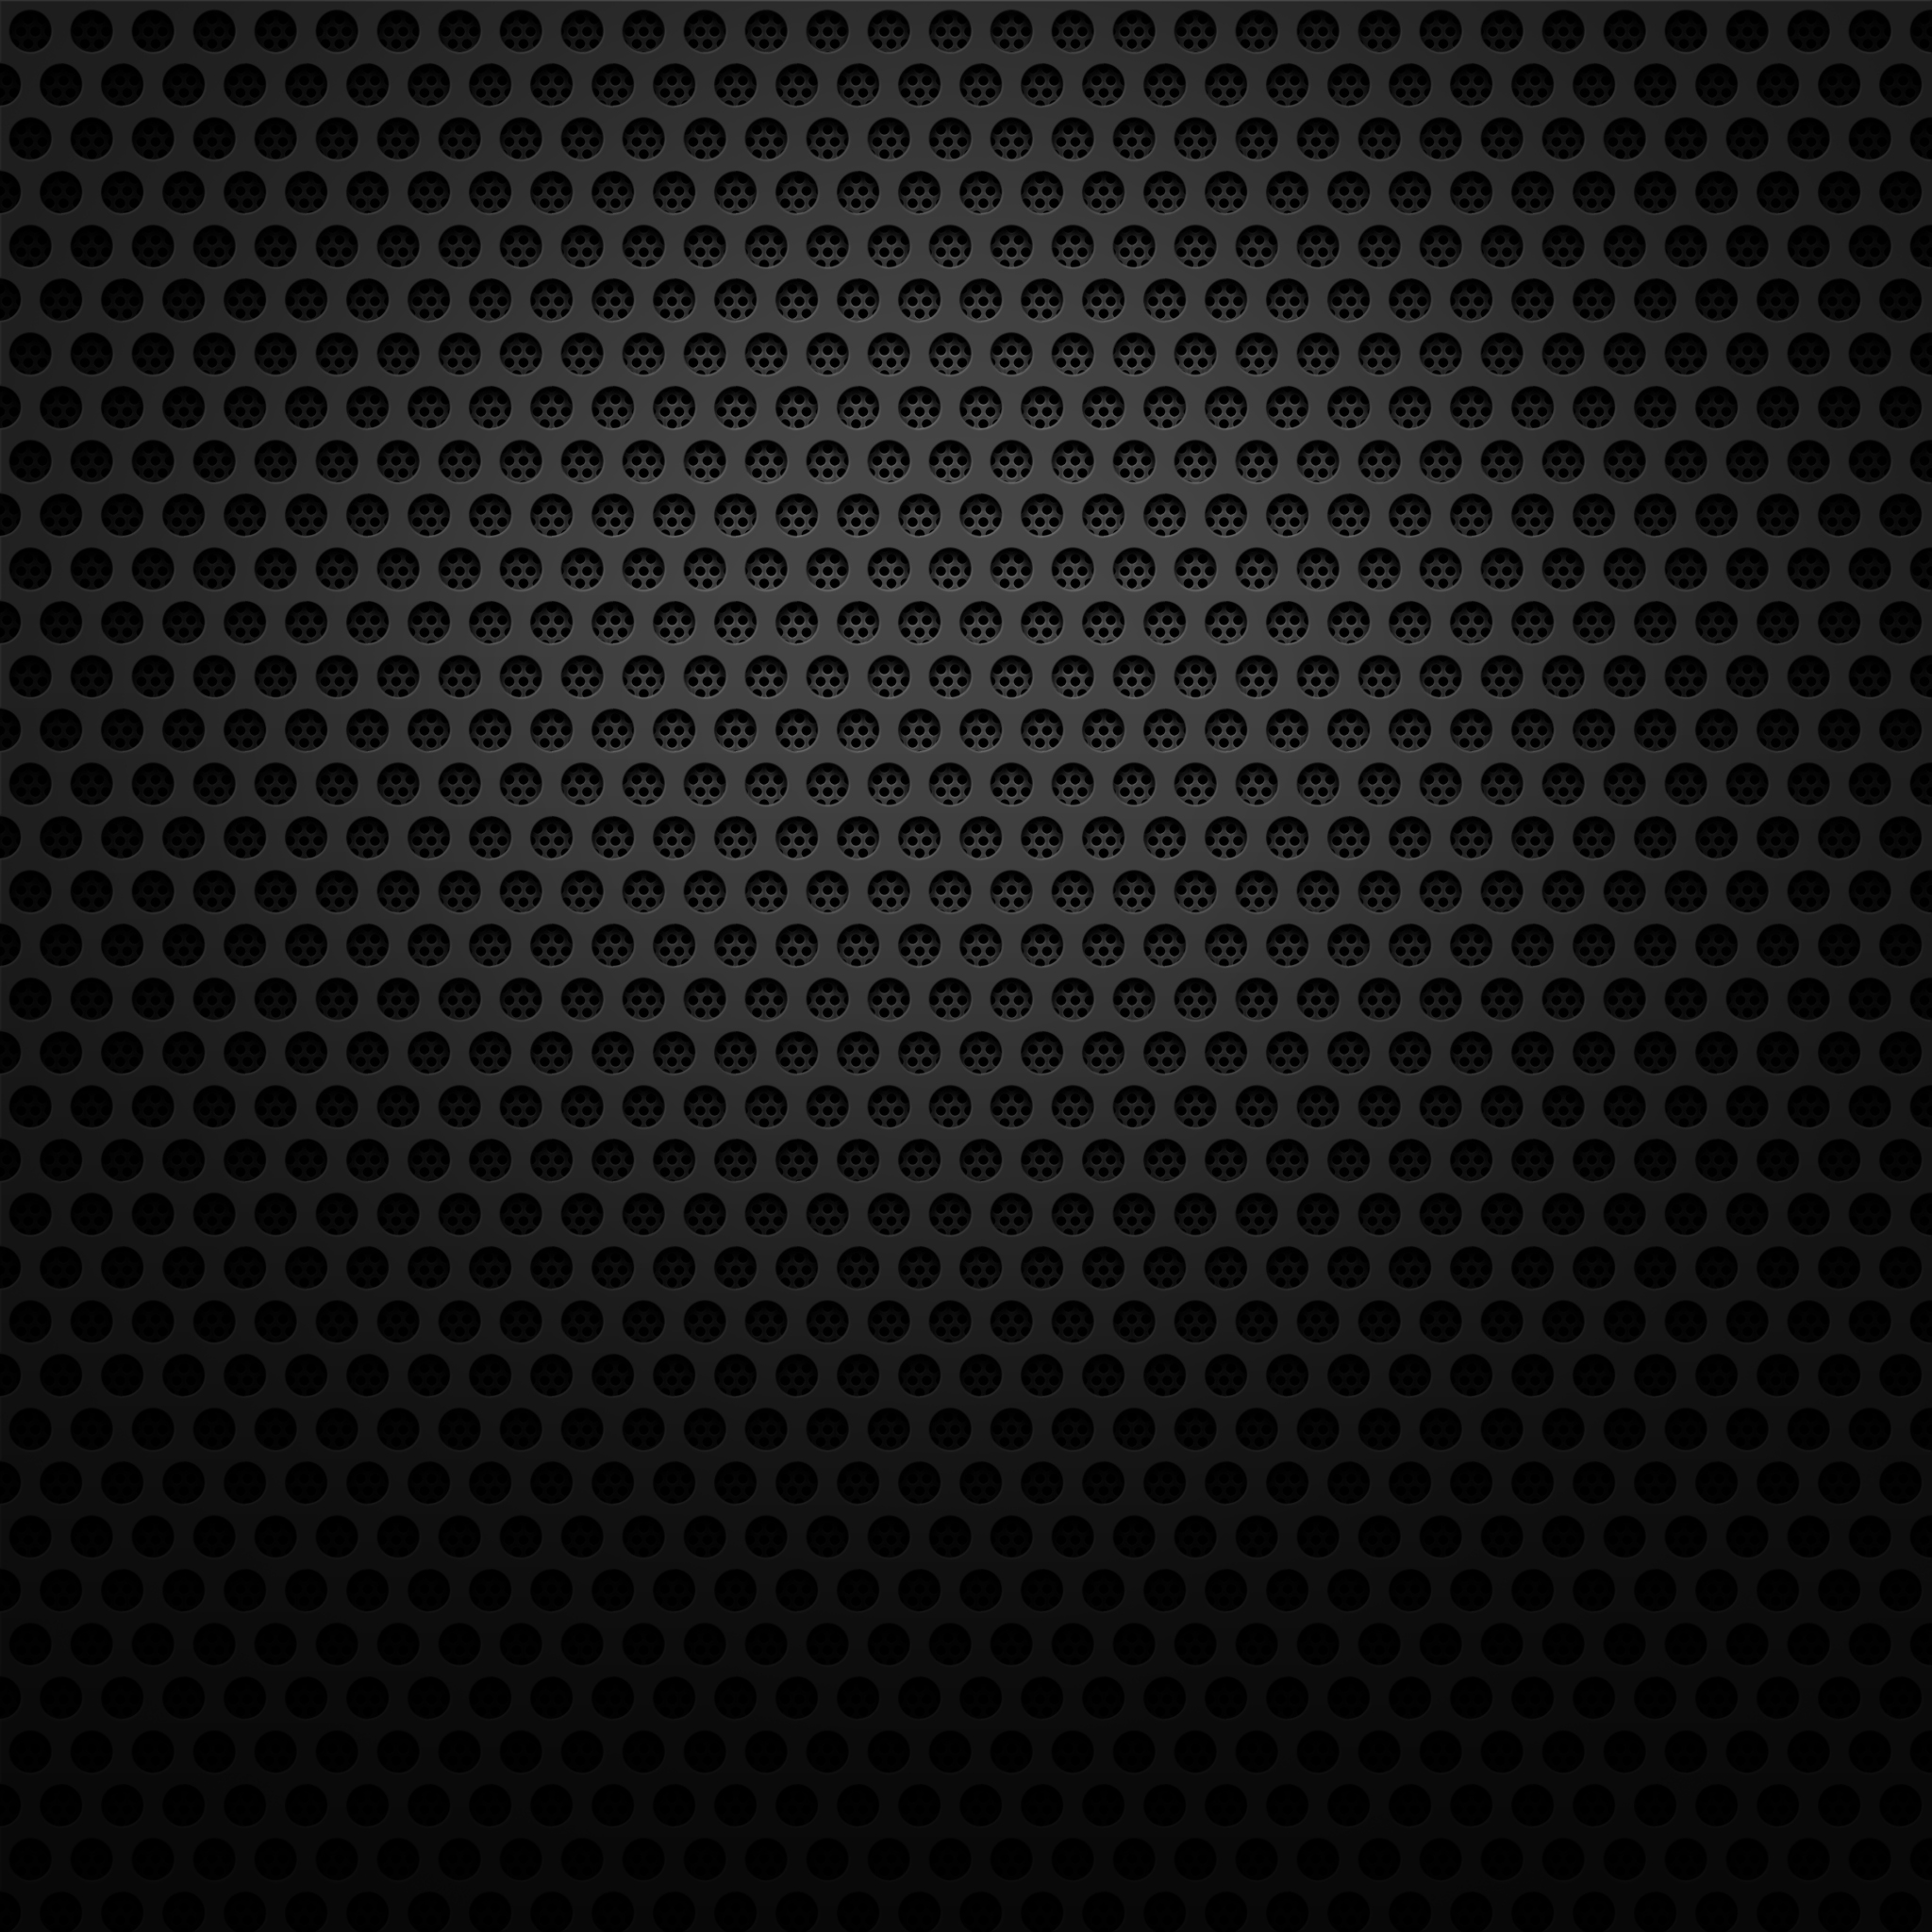 ipad retina wallpaper